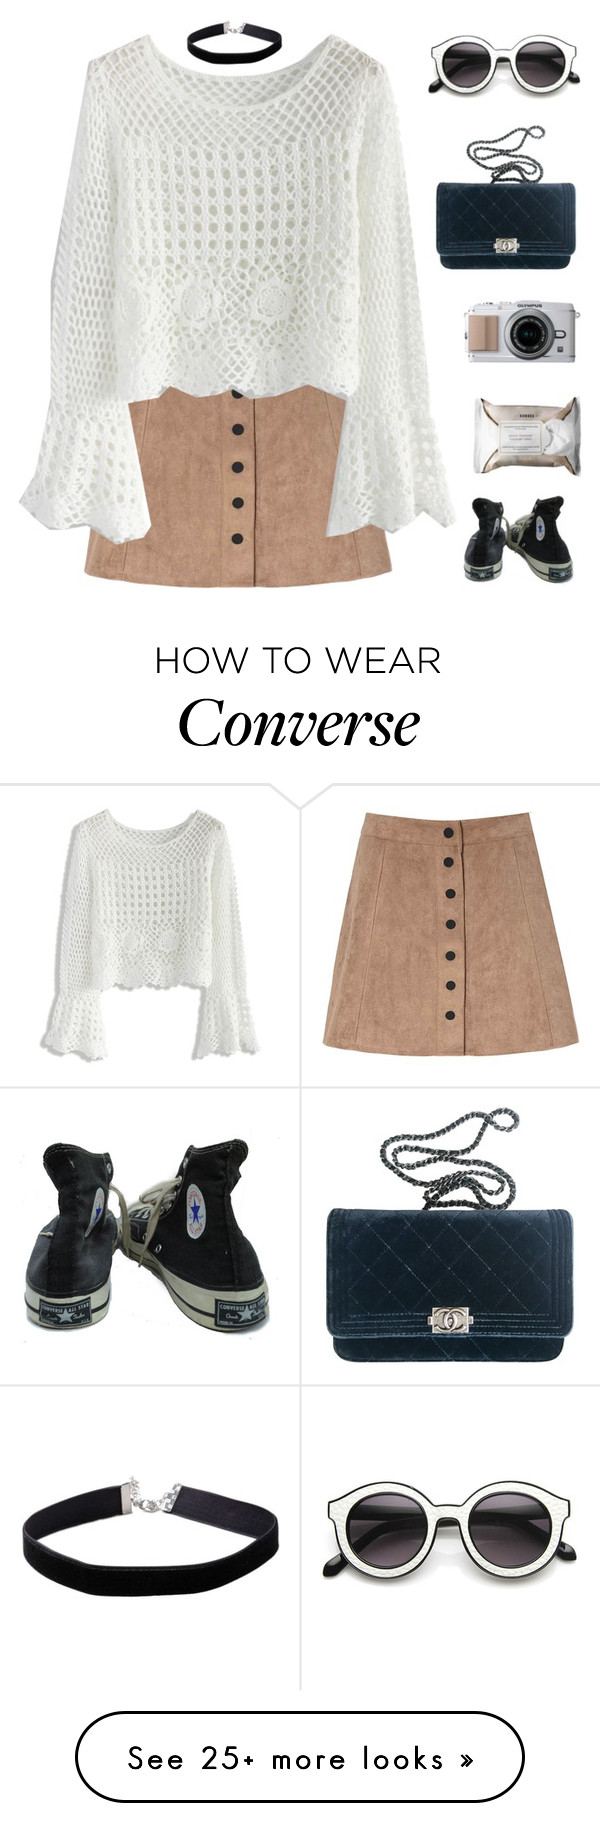 """""""you are limitless"""" by my-pink-wings on Polyvore featuring Glamorous, Chicwish, Chanel, Korres, Converse and Miss Selfridge"""